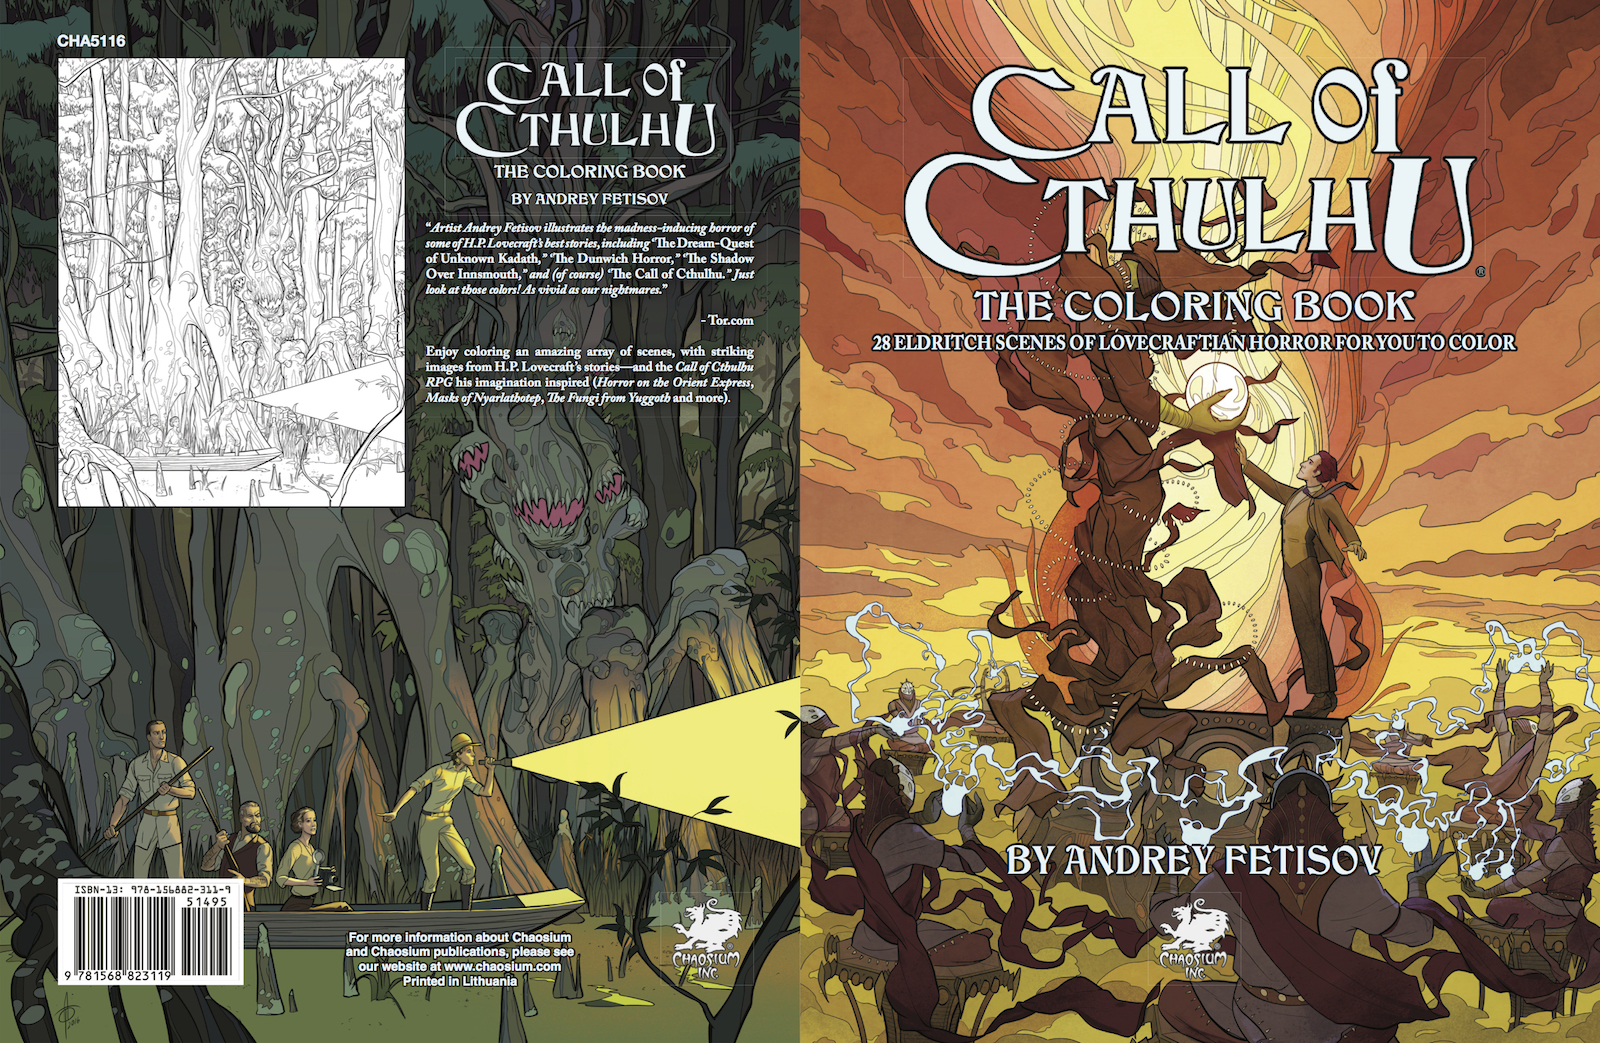 ENnies spotlight: Call of Cthulhu - The Coloring Book - Chaosium Inc.